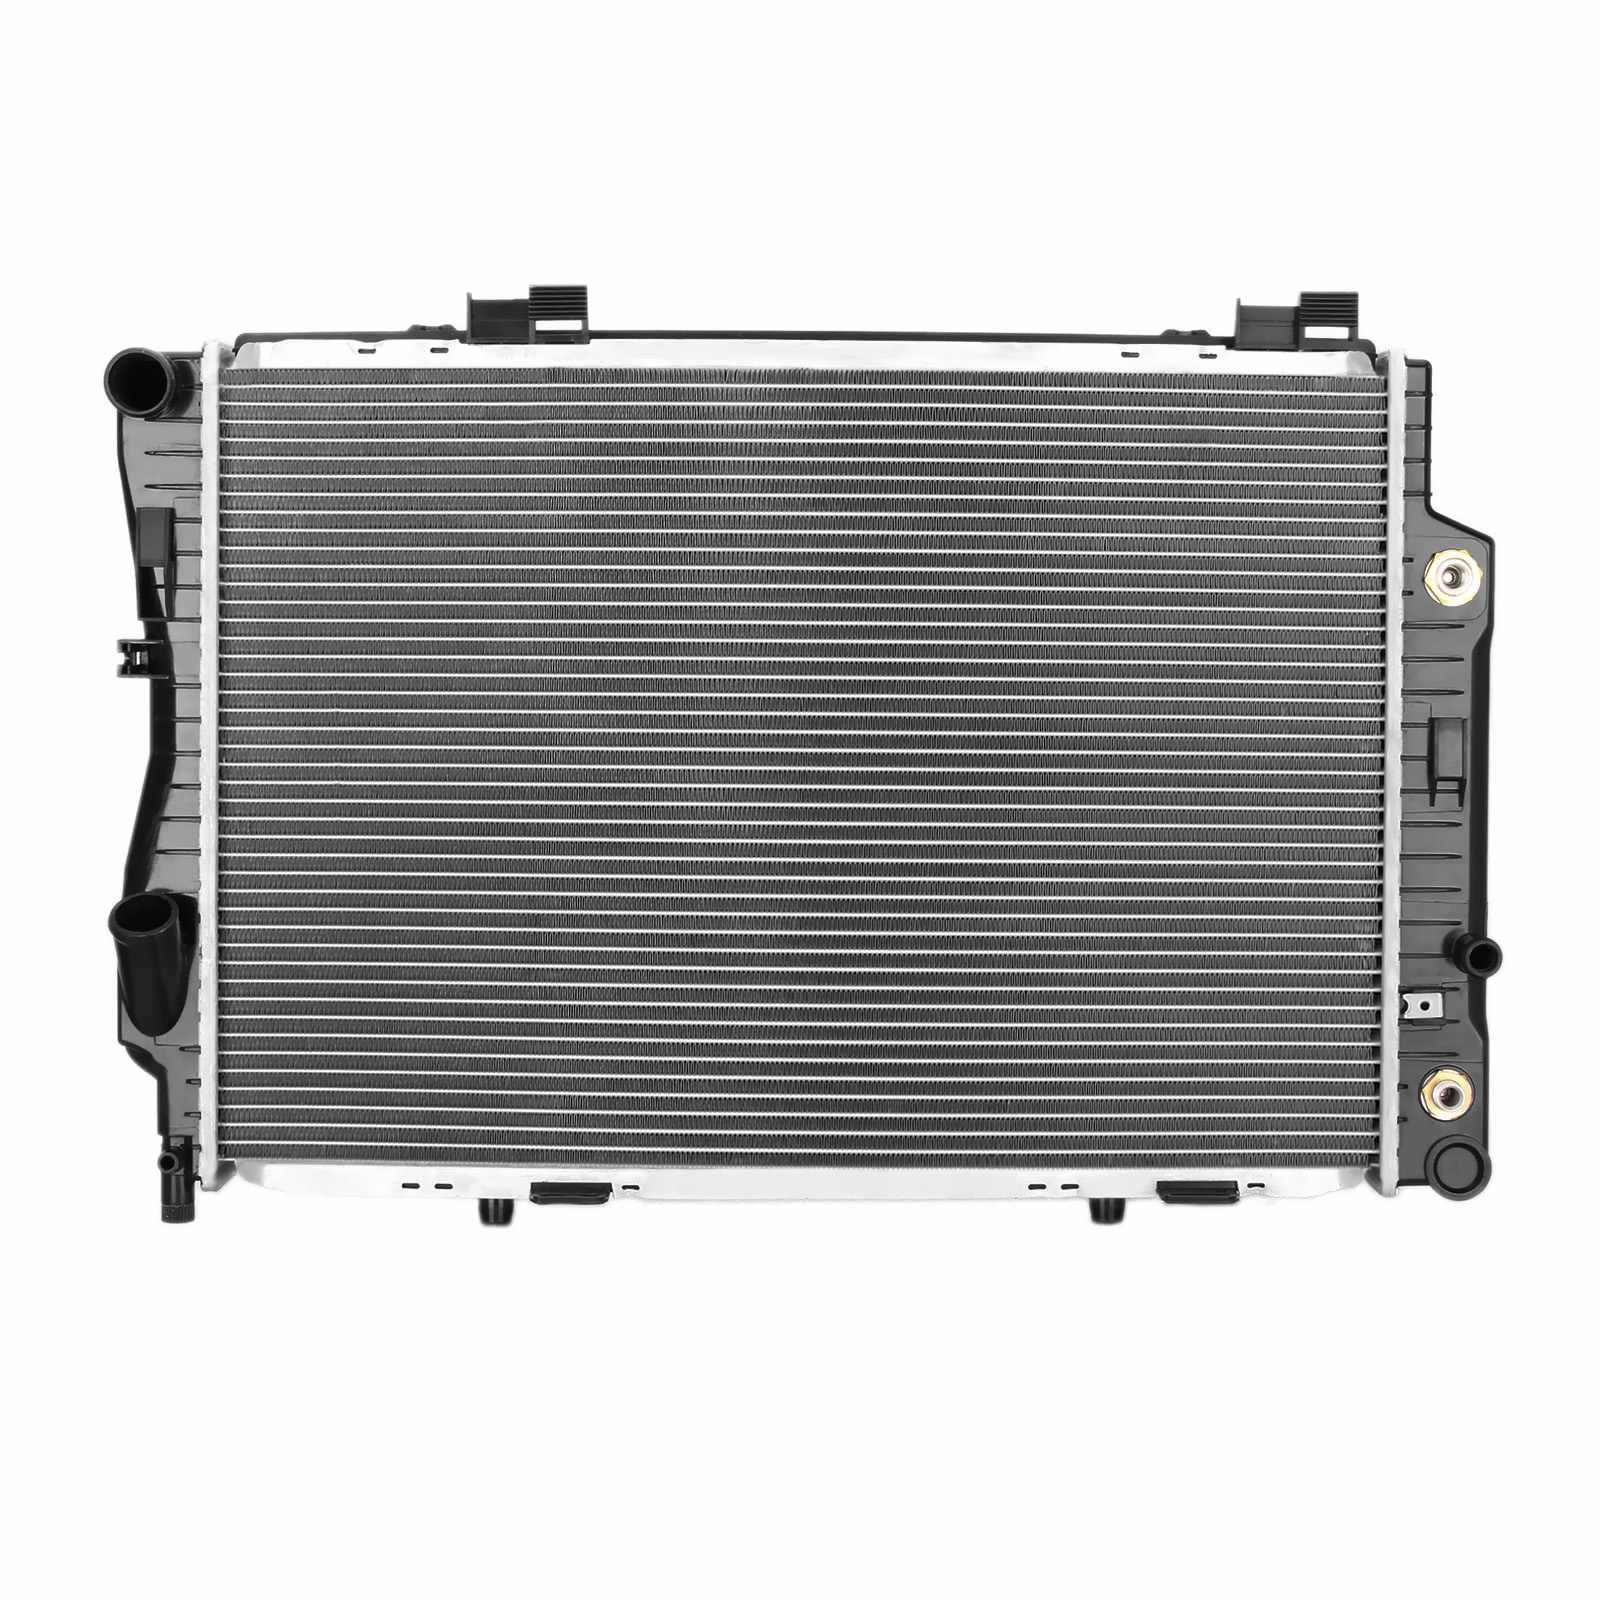 New Radiator For Mercedes-Benz C36 AMG C280 94-97 Plastic Aluminium 2025004103